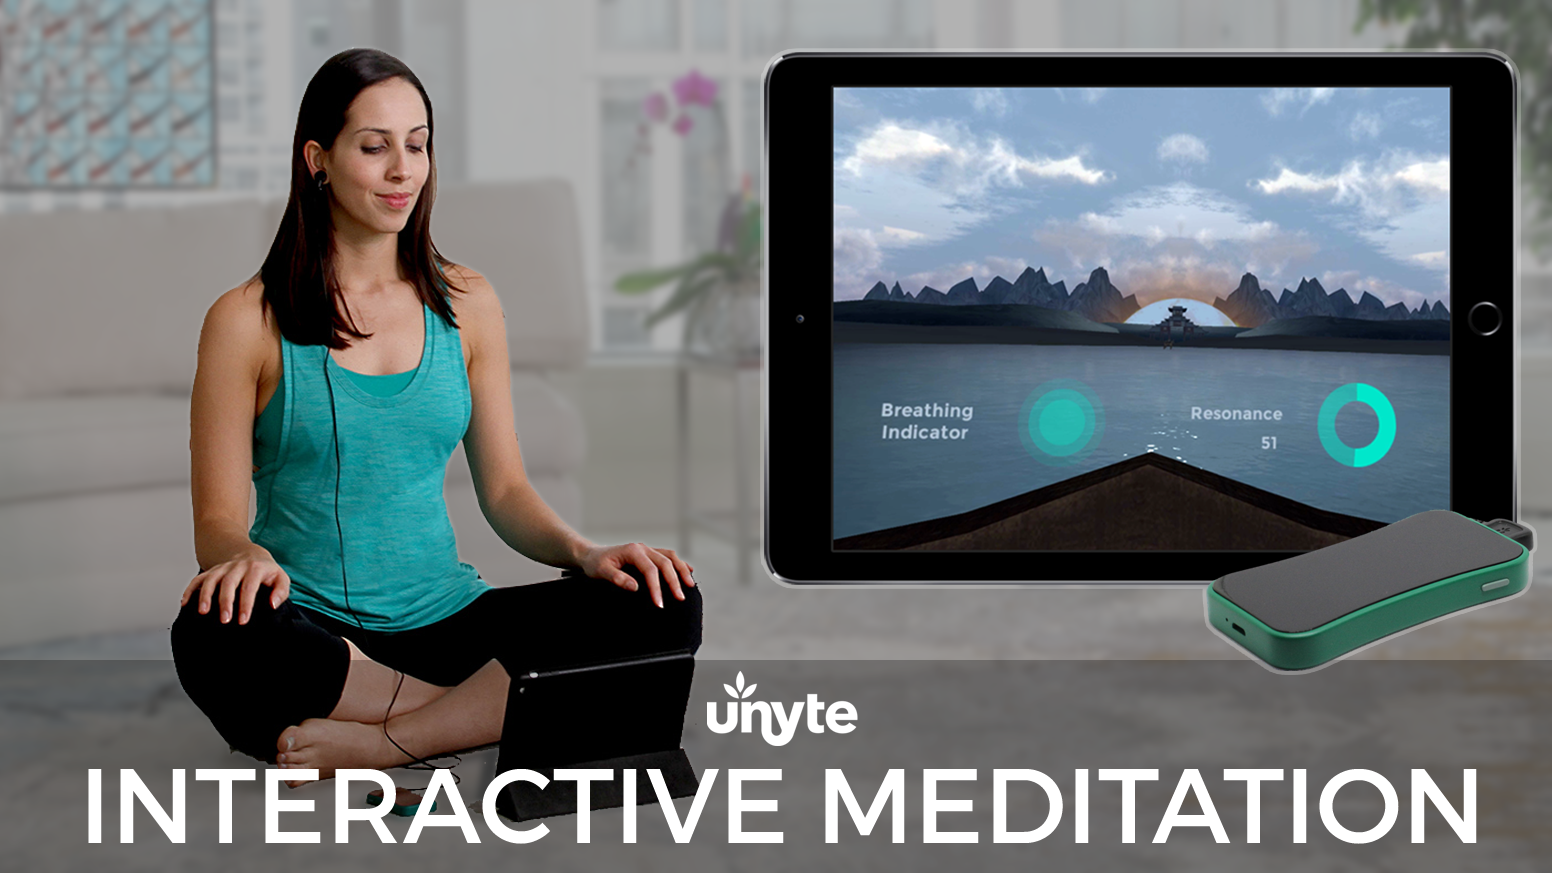 Unyte guides you to calm through a unique combination of biofeedback, meditation, gaming and virtual reality.